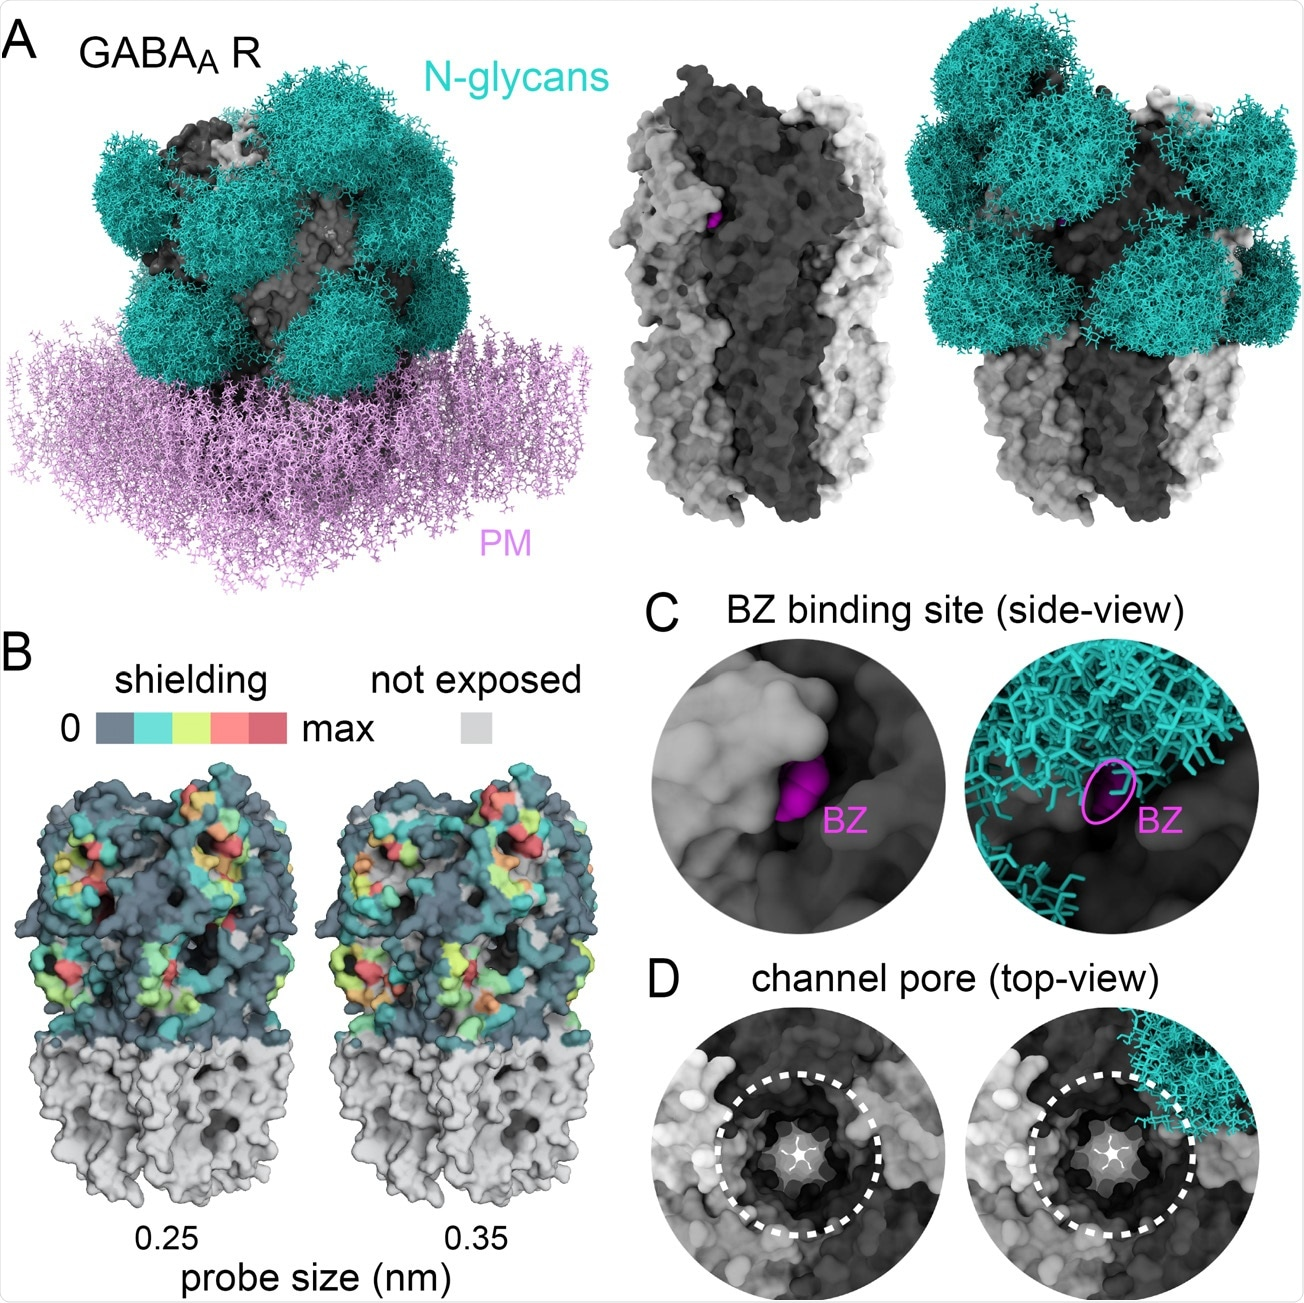 Glycans sculpt the surface of GABAA receptors A) Structure of a human homopentameric GABAA receptor (beta3 subunits, grey) shown with and without patch of plasma membrane (PM, added for visualisation only, pink) with and without reconstituted glycan shields (GlcNac2-Man5, blue in A and B). B) 3D-heatmaps of the reduction of solvent accessible surface area (SASA) by glycans for different probe size. C-D) Magnified views of the benzodiazepine binding site with bound ligand, BZ, shown in fuchsia (C) and the extracellular vestibule of the channel pore (dotted lines in D). In C and D, note the partial occlusion of the ligand binding site and the ending of the glycan shield at the opening of the channel pore, respectively.